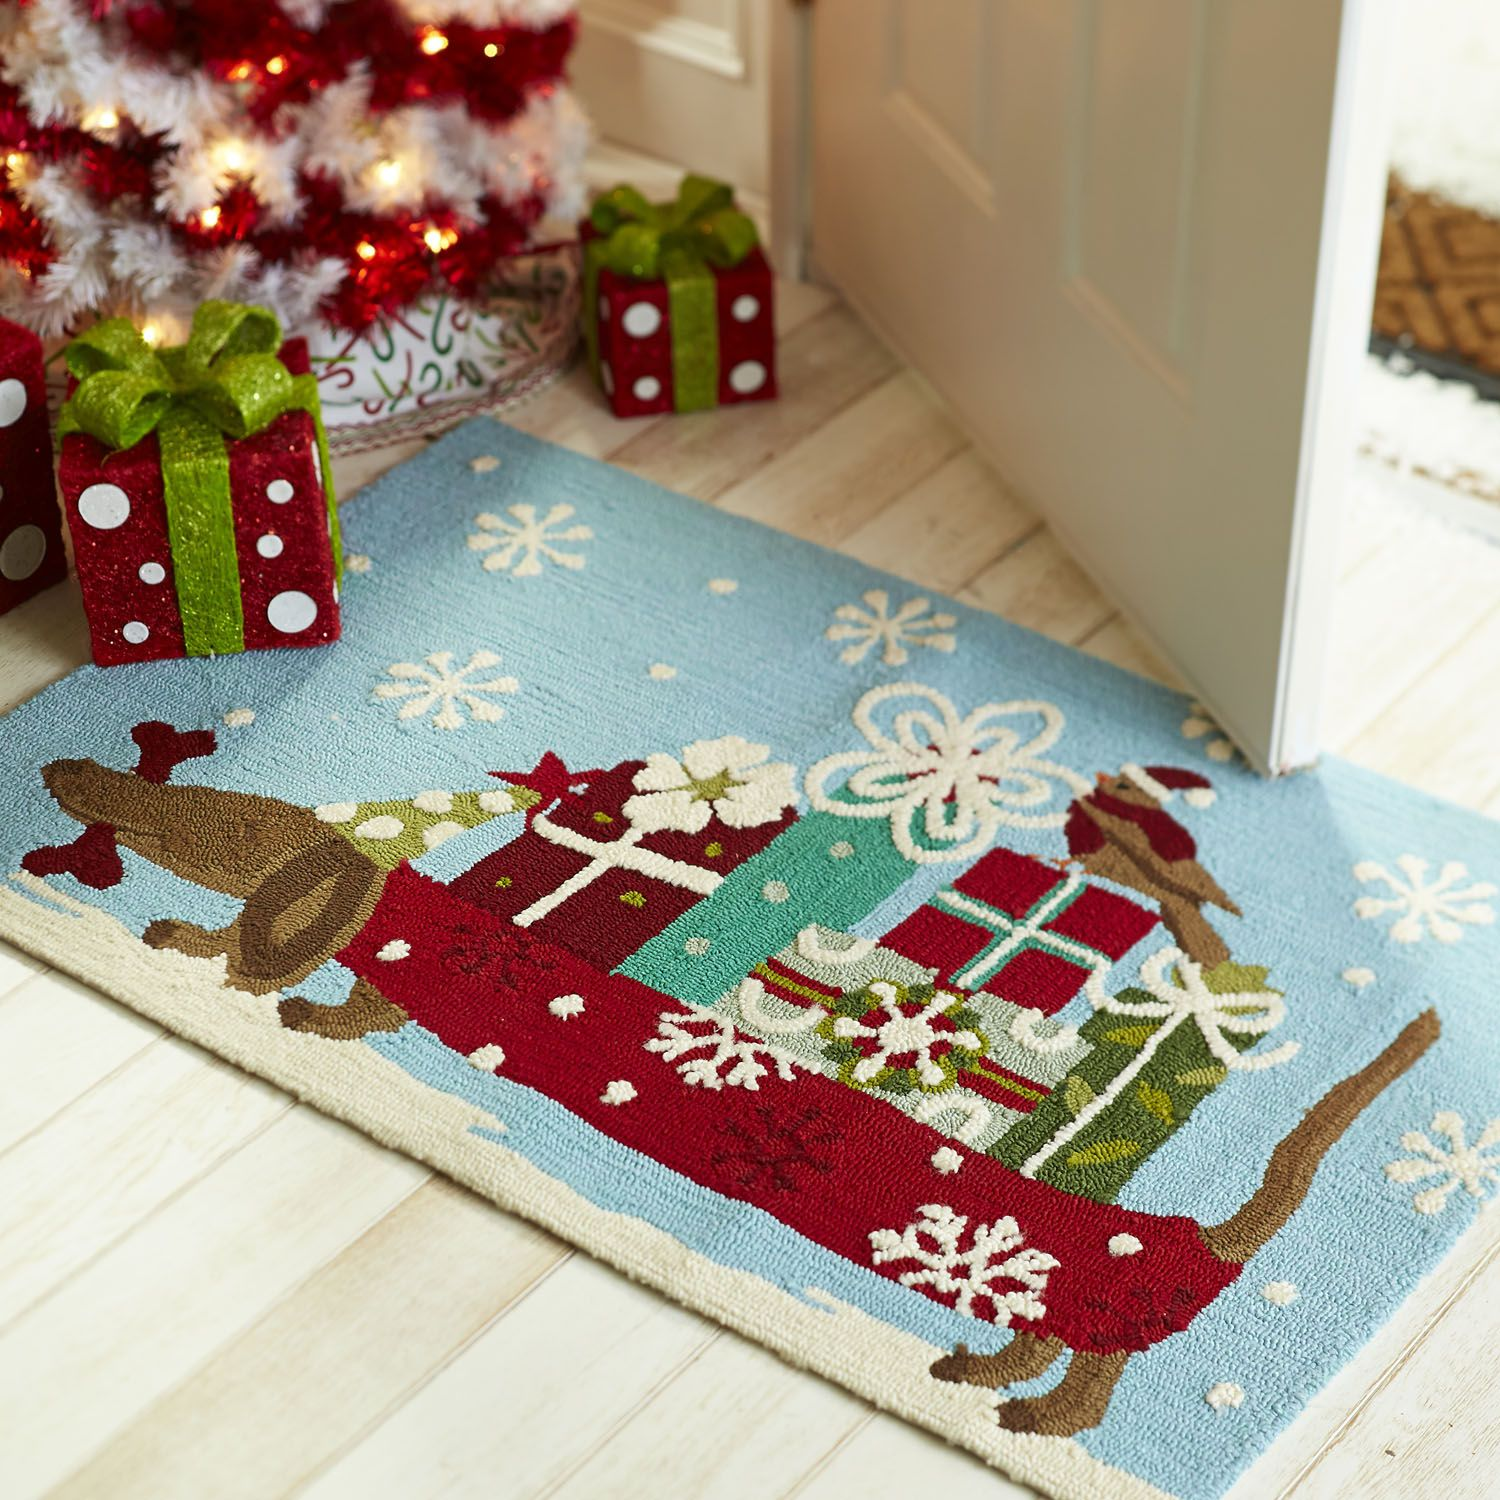 Doggy Packages Rug Dachshund Dreams Pinterest